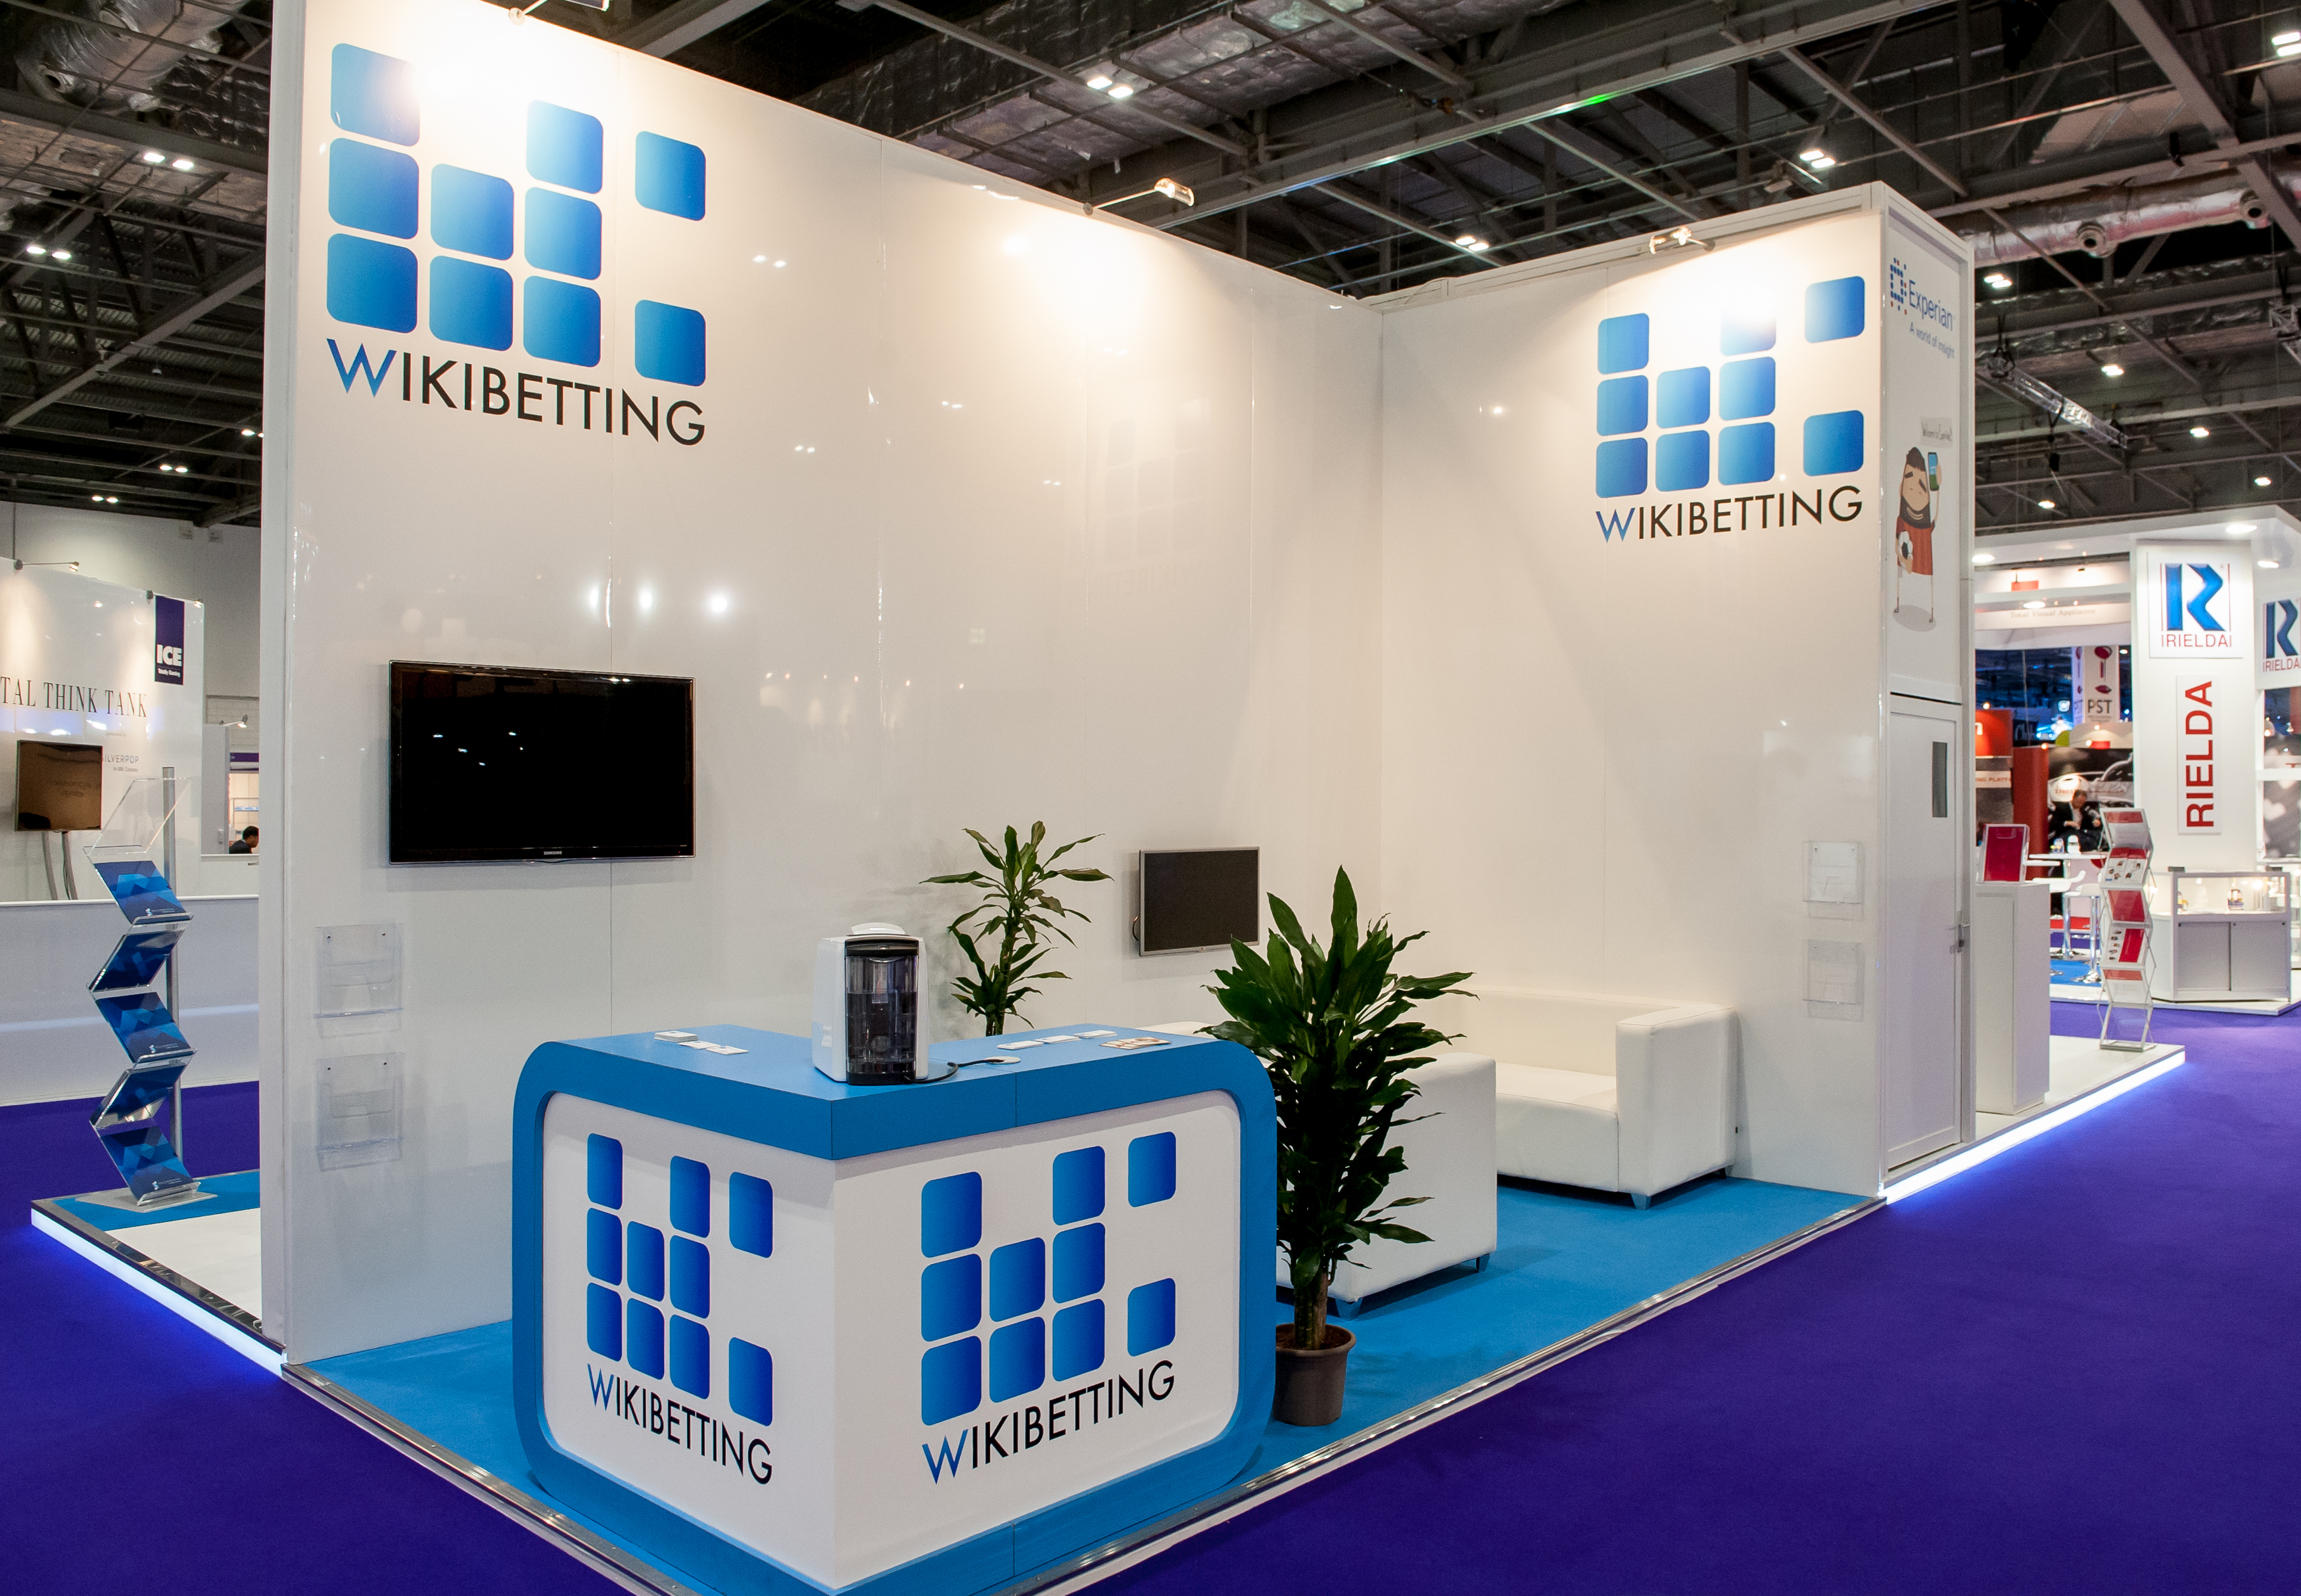 Exhibition Stand Fitters : Wikibetting ice expose designs exhibition stands